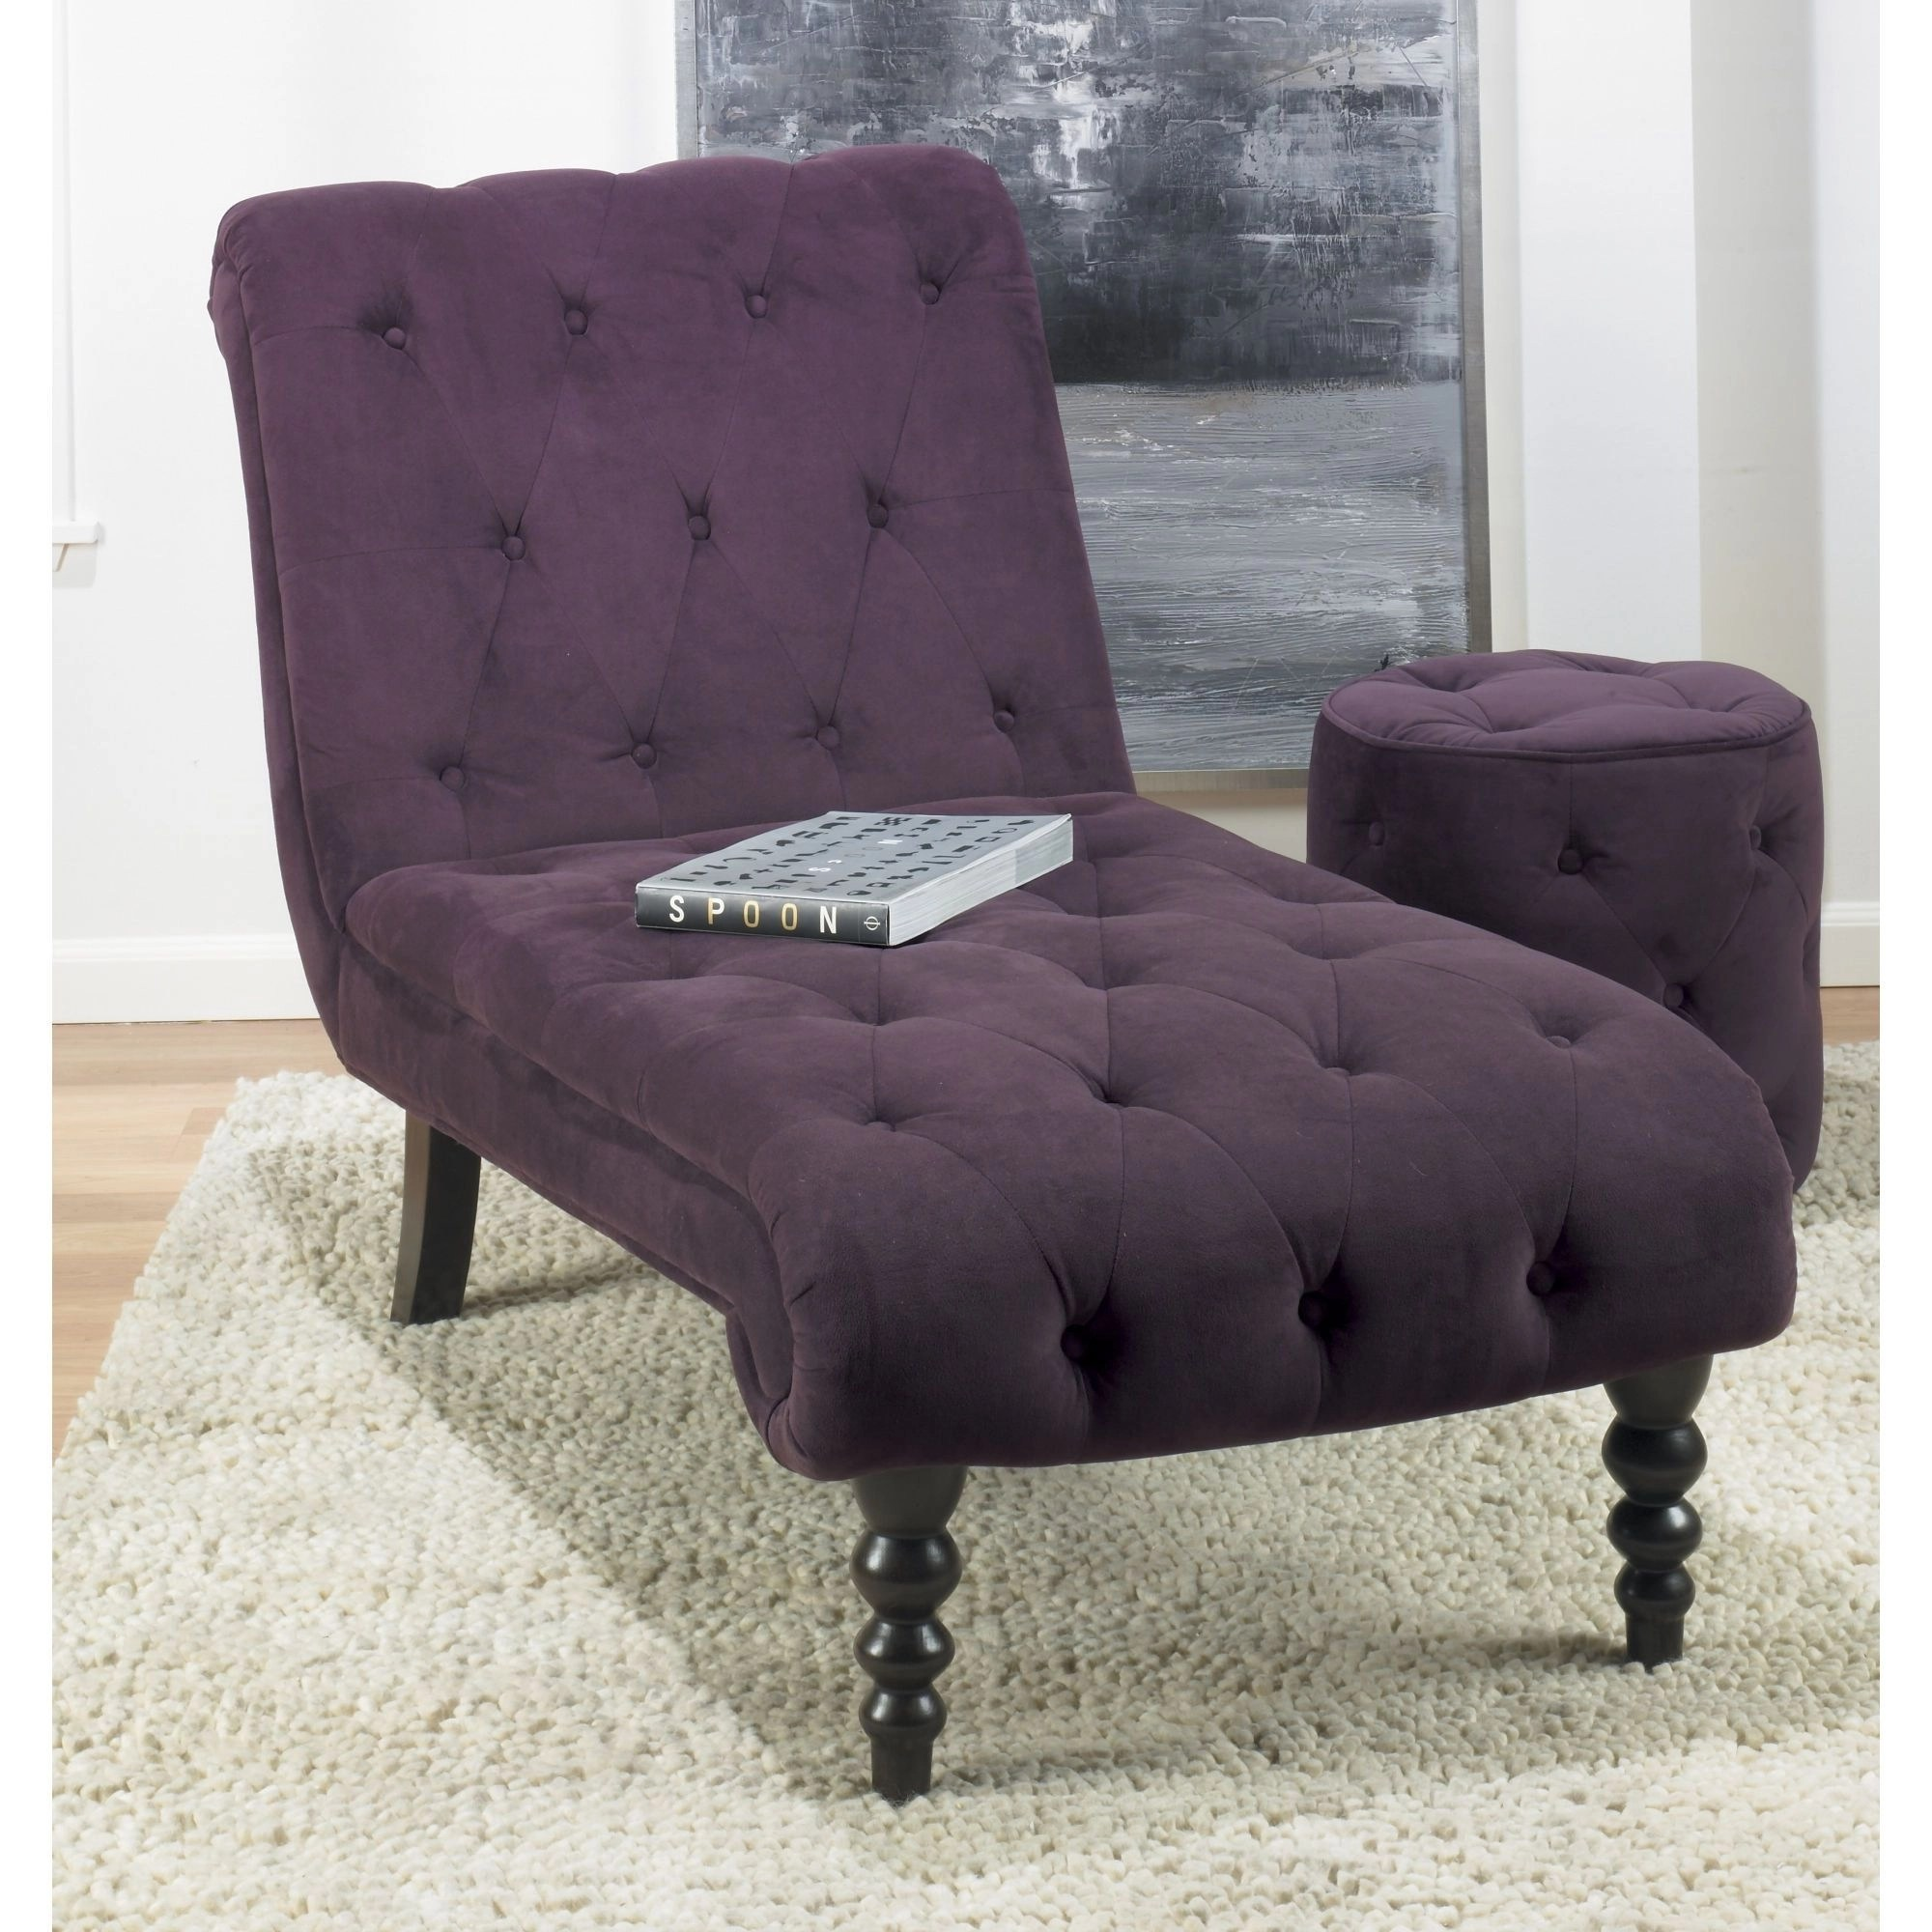 purple chaise lounge chair fishing accessories uk ideas on foter 1